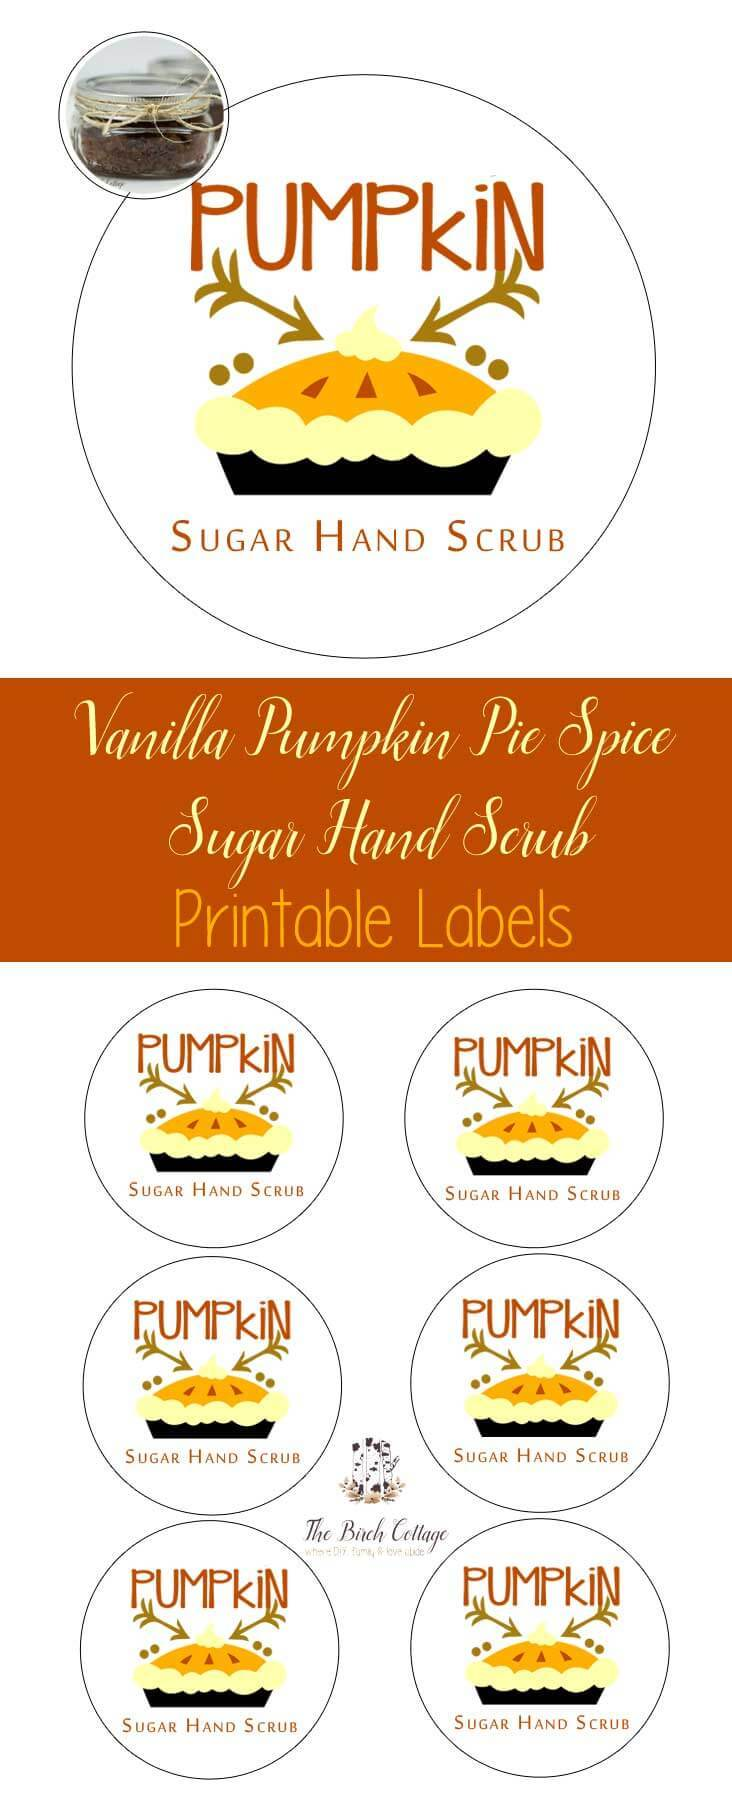 Printable Labels for Vanilla Pumpkin Pie Spice Sugar Scrub by The Birch Cottage